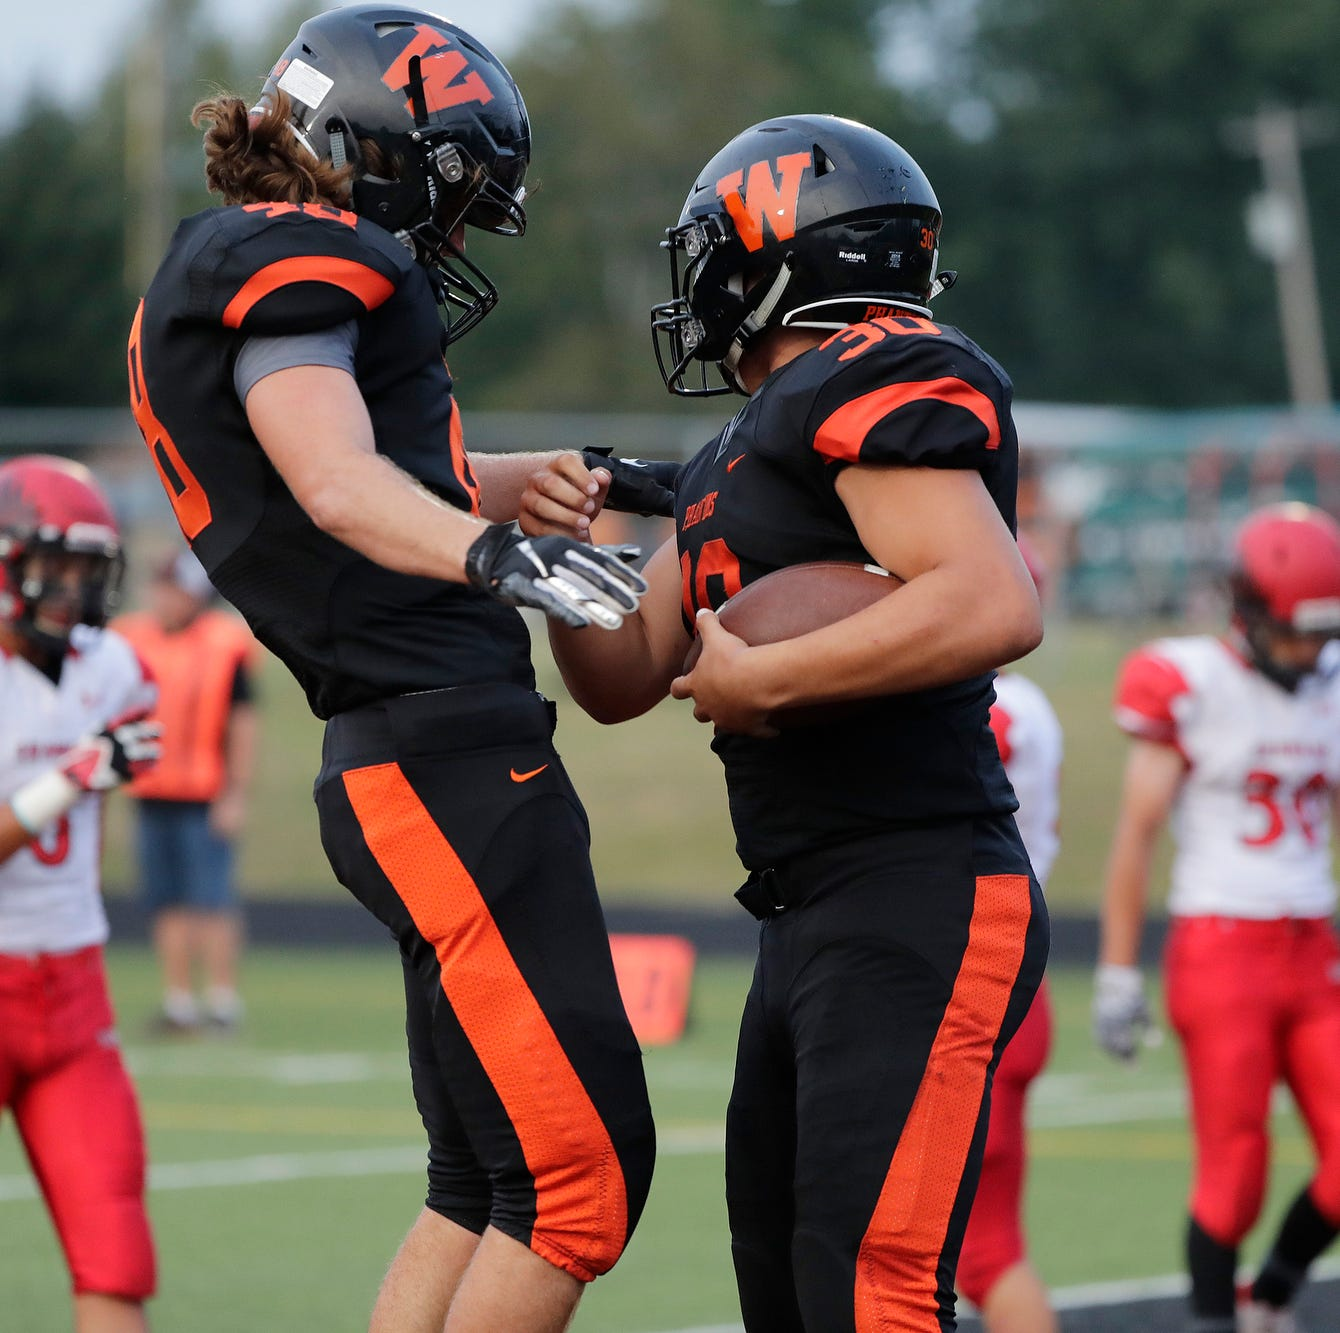 High school football: West De Pere's dominance over Shawano continues